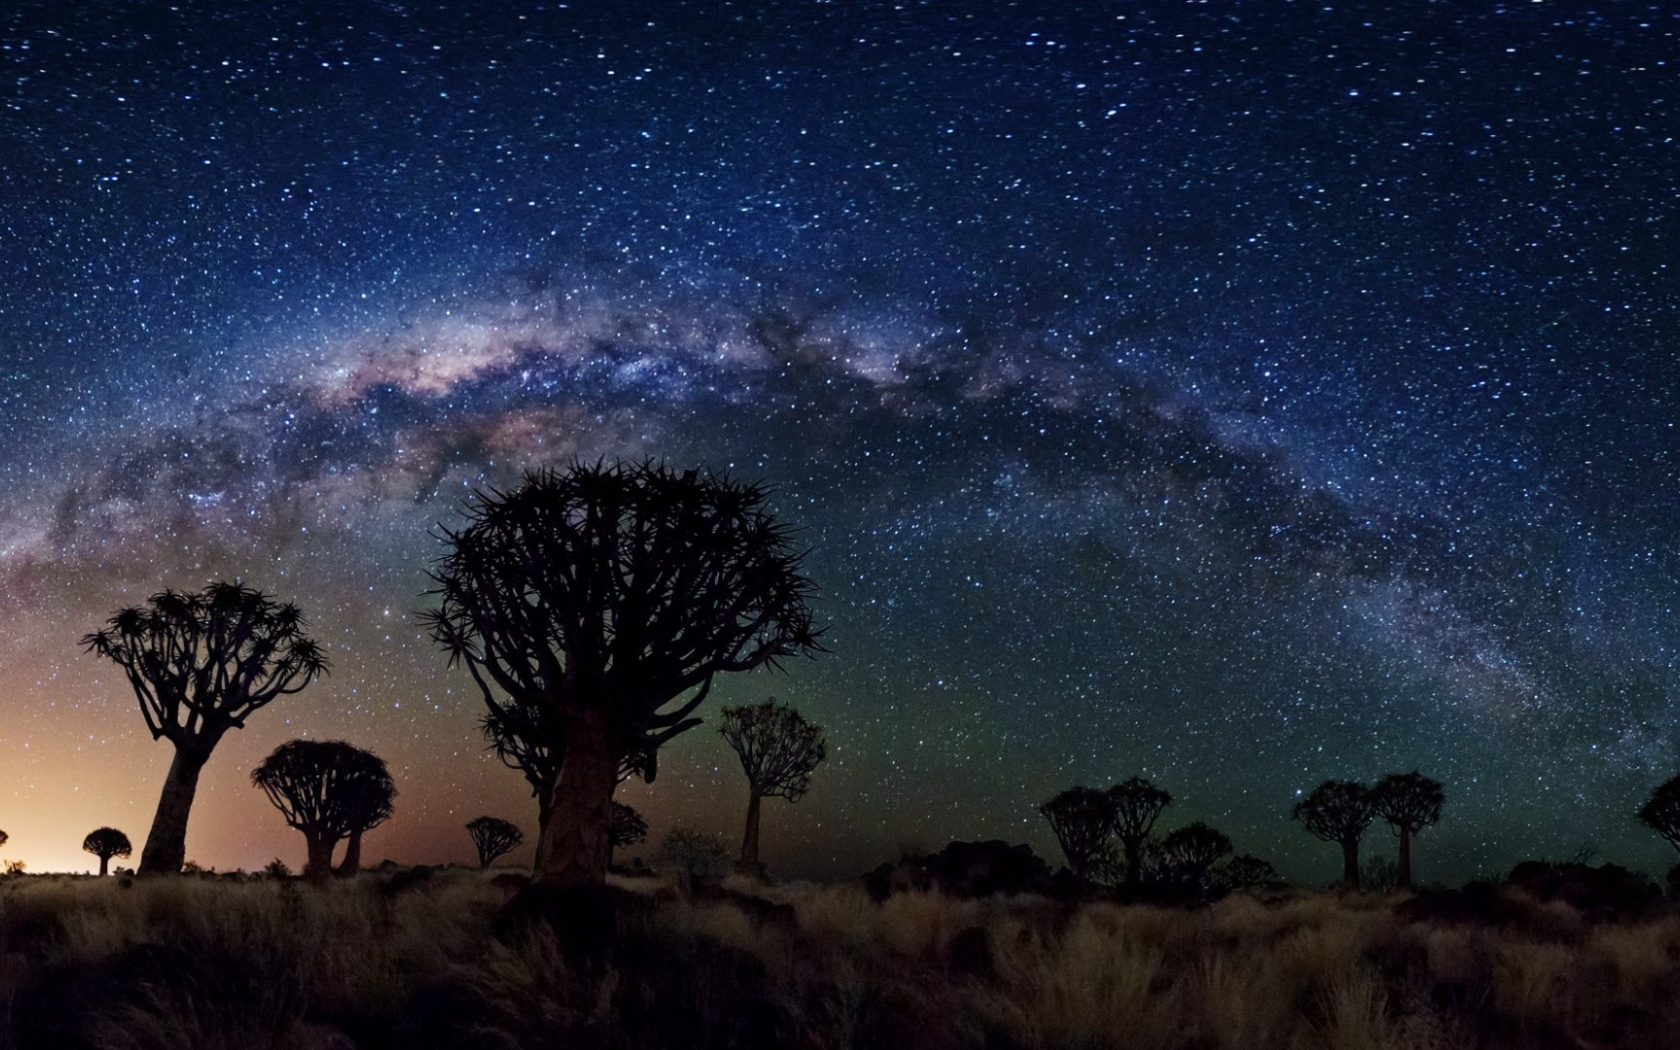 1680x1050 Milky Way Over Quiver Tree Forest, space, nasa, galaxies, stars